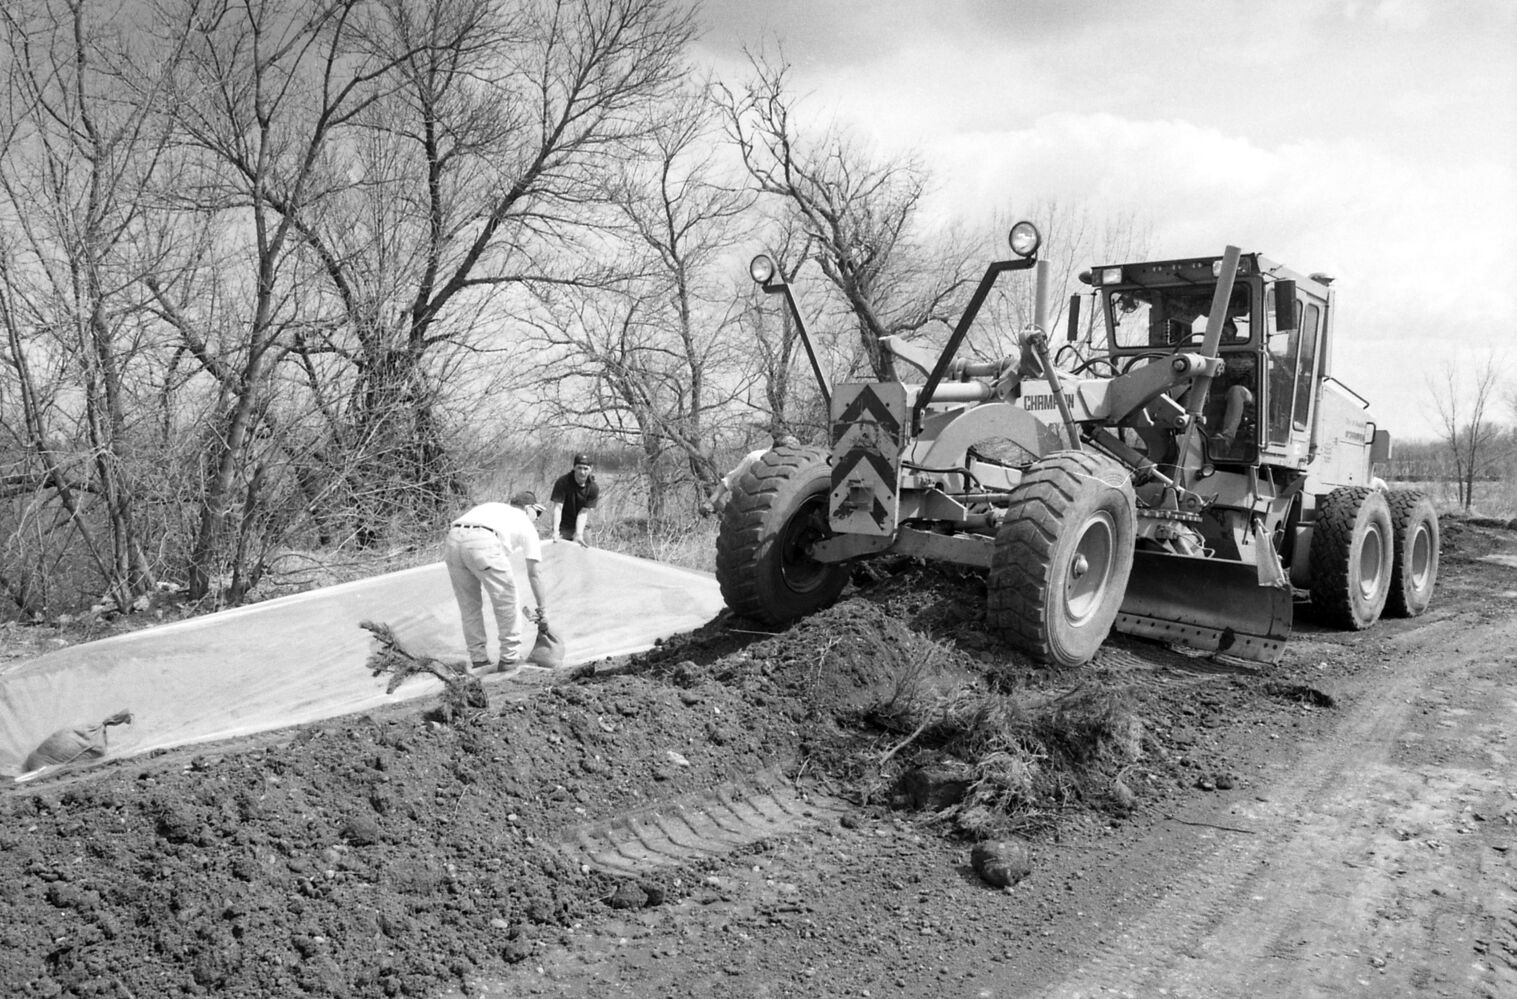 A grader and sandbaggers work on the roads during the 1995 flood fight. (Dirk Aberson/ Brandon Sun archives, April 24, 1995)